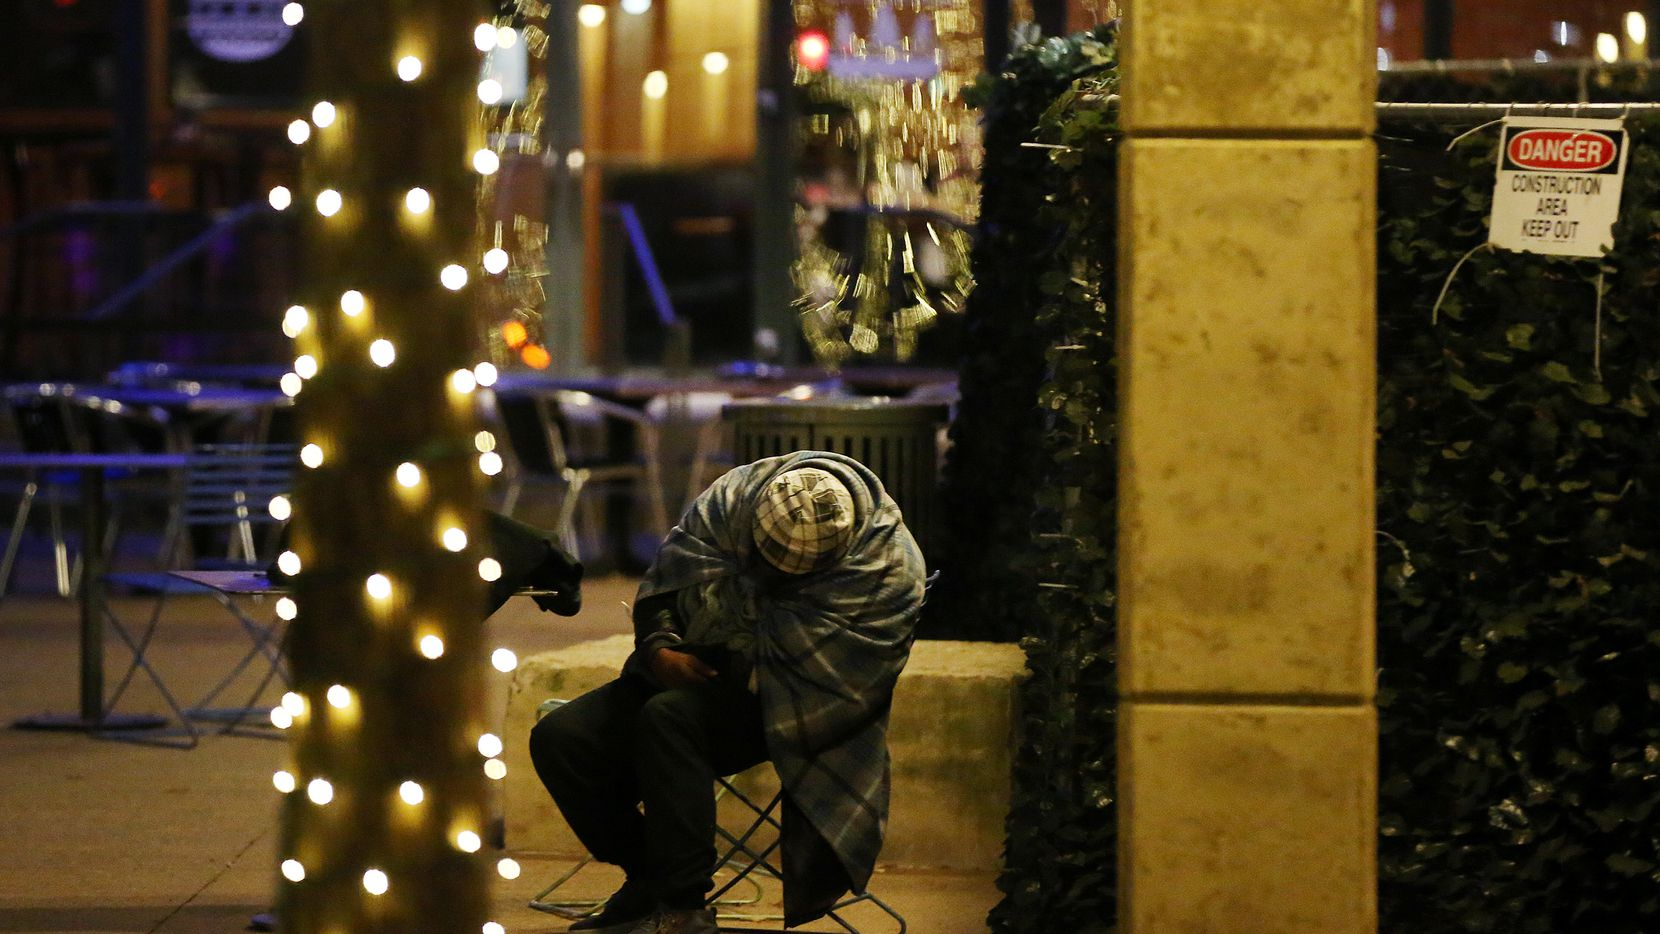 A homeless person slumped over in a chair in Pegasus Plaza in downtown Dallas on Dec. 31, 2017, as frigid temperatures dipping into the teens hit Dallas-Fort Worth.